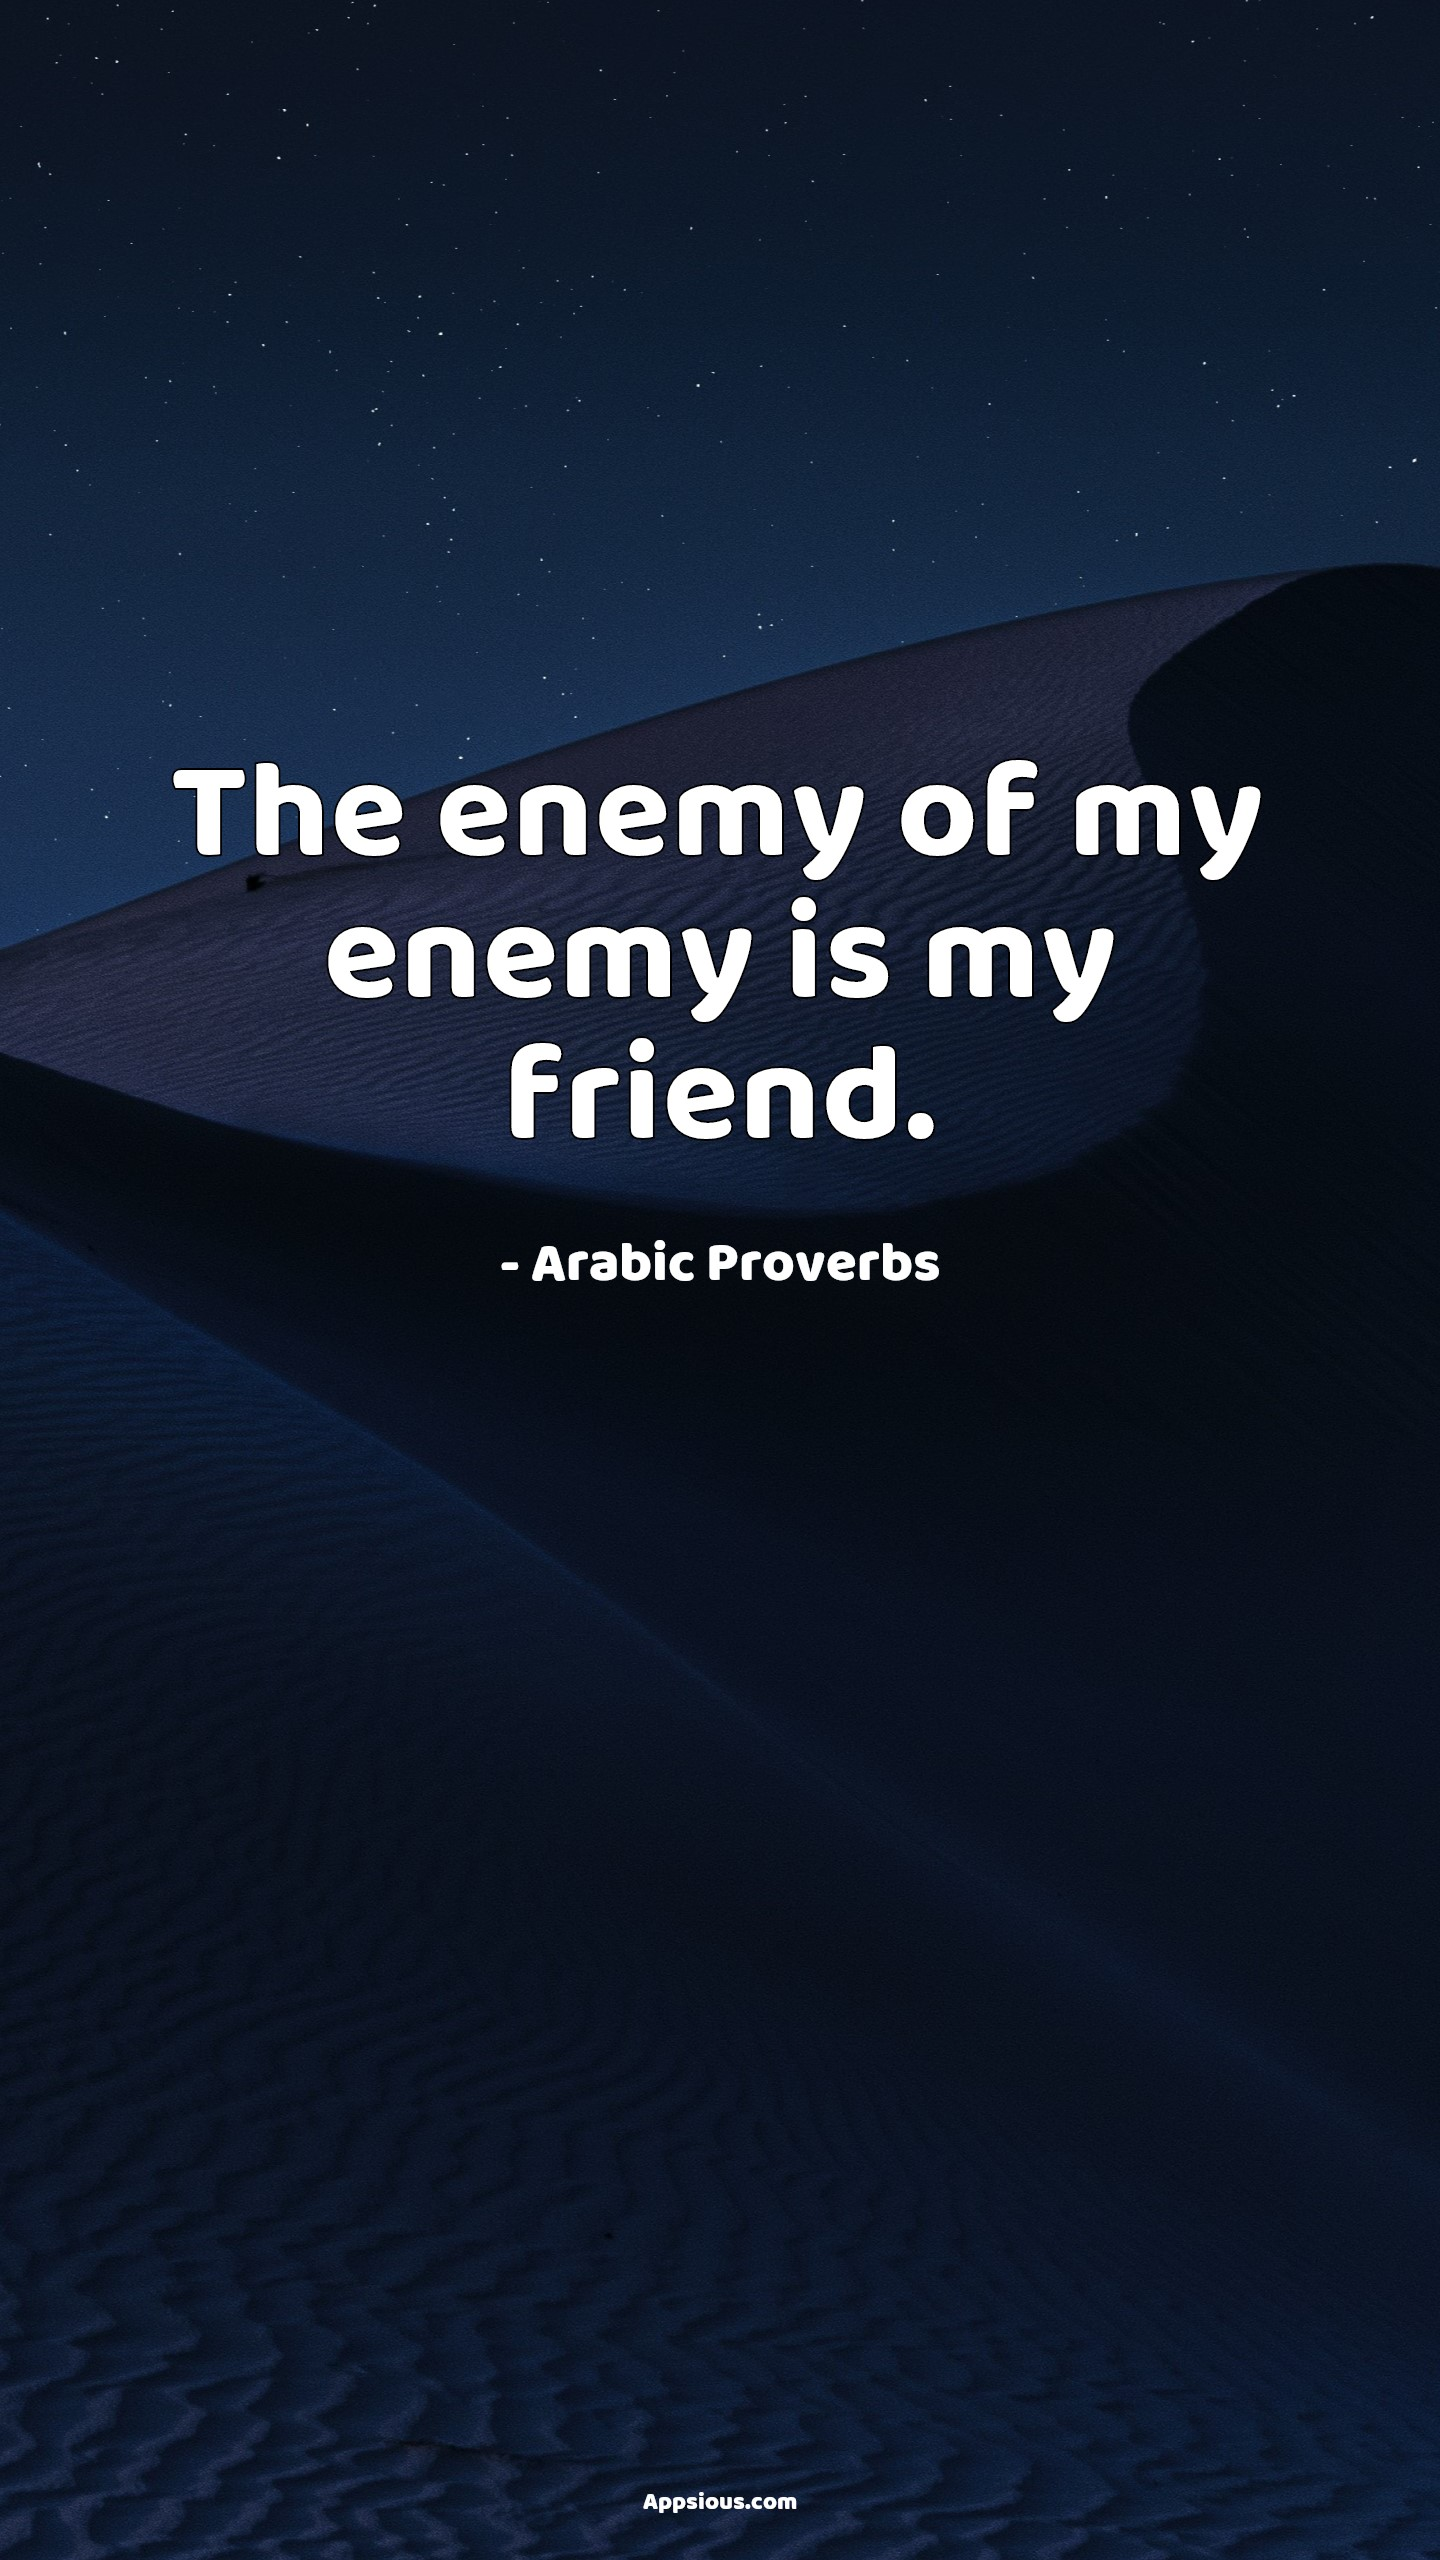 The enemy of my enemy is my friend.